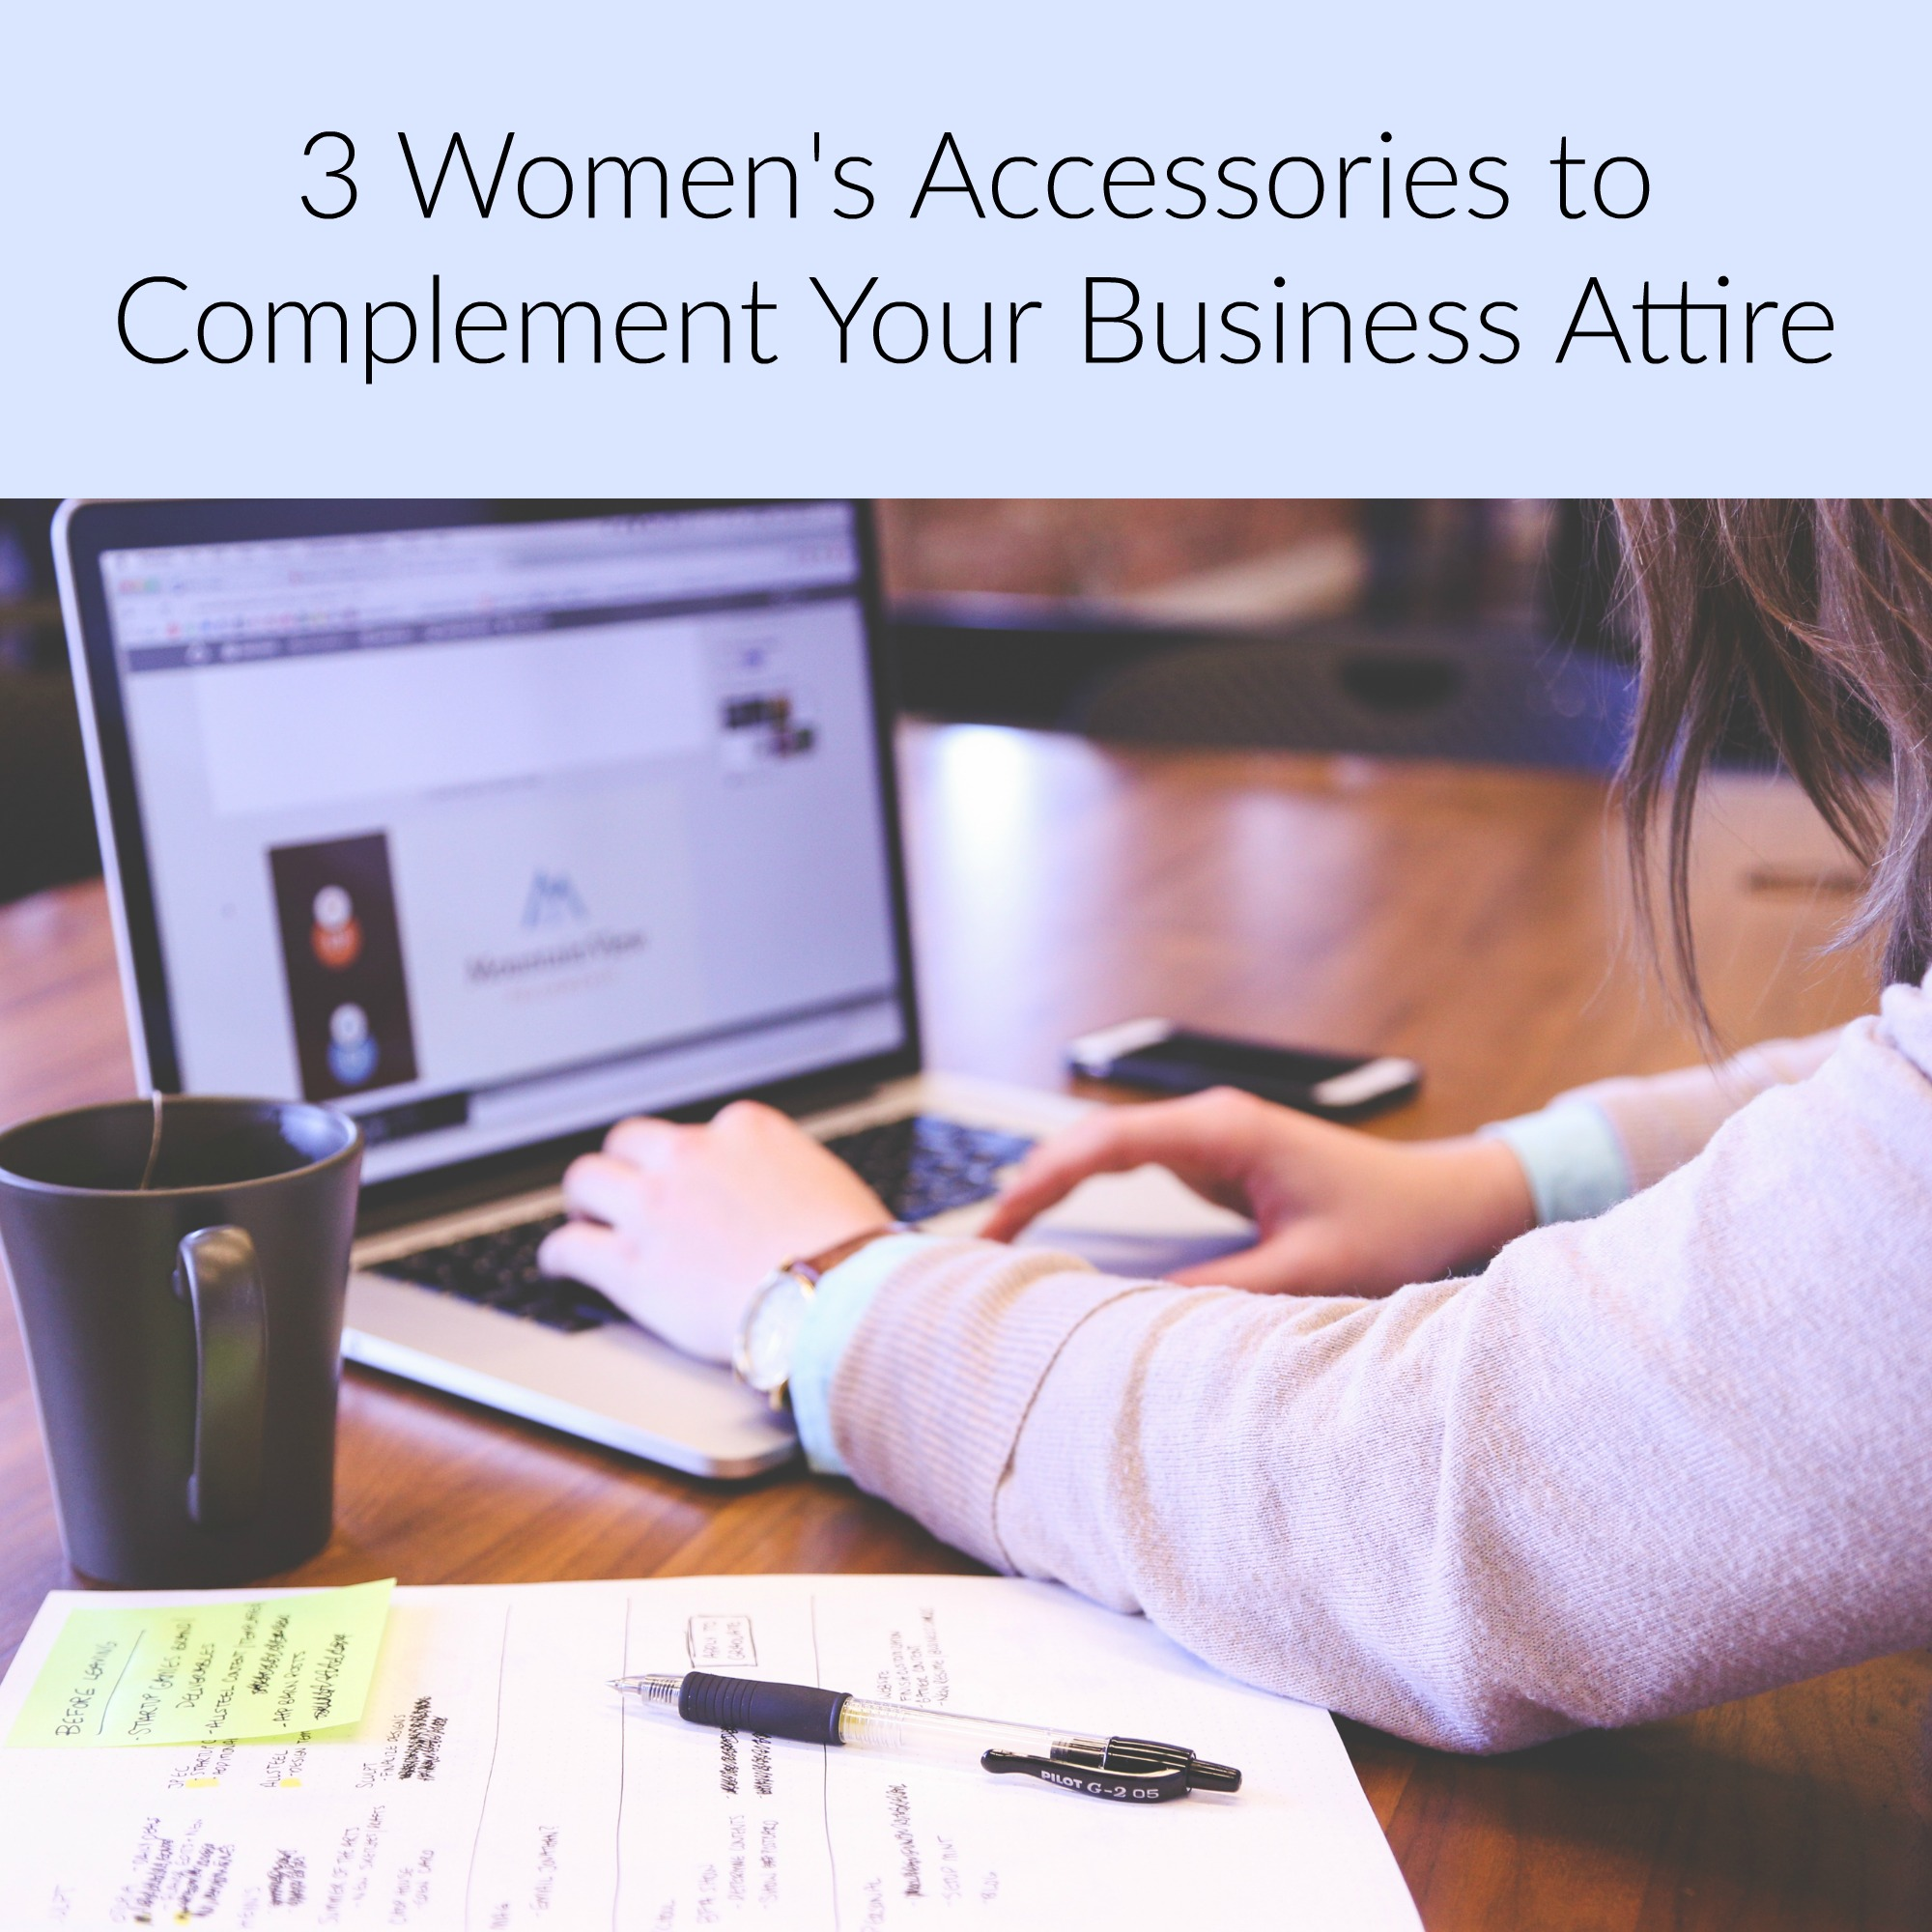 3 Women's Accessories to Complement Your Business Attire